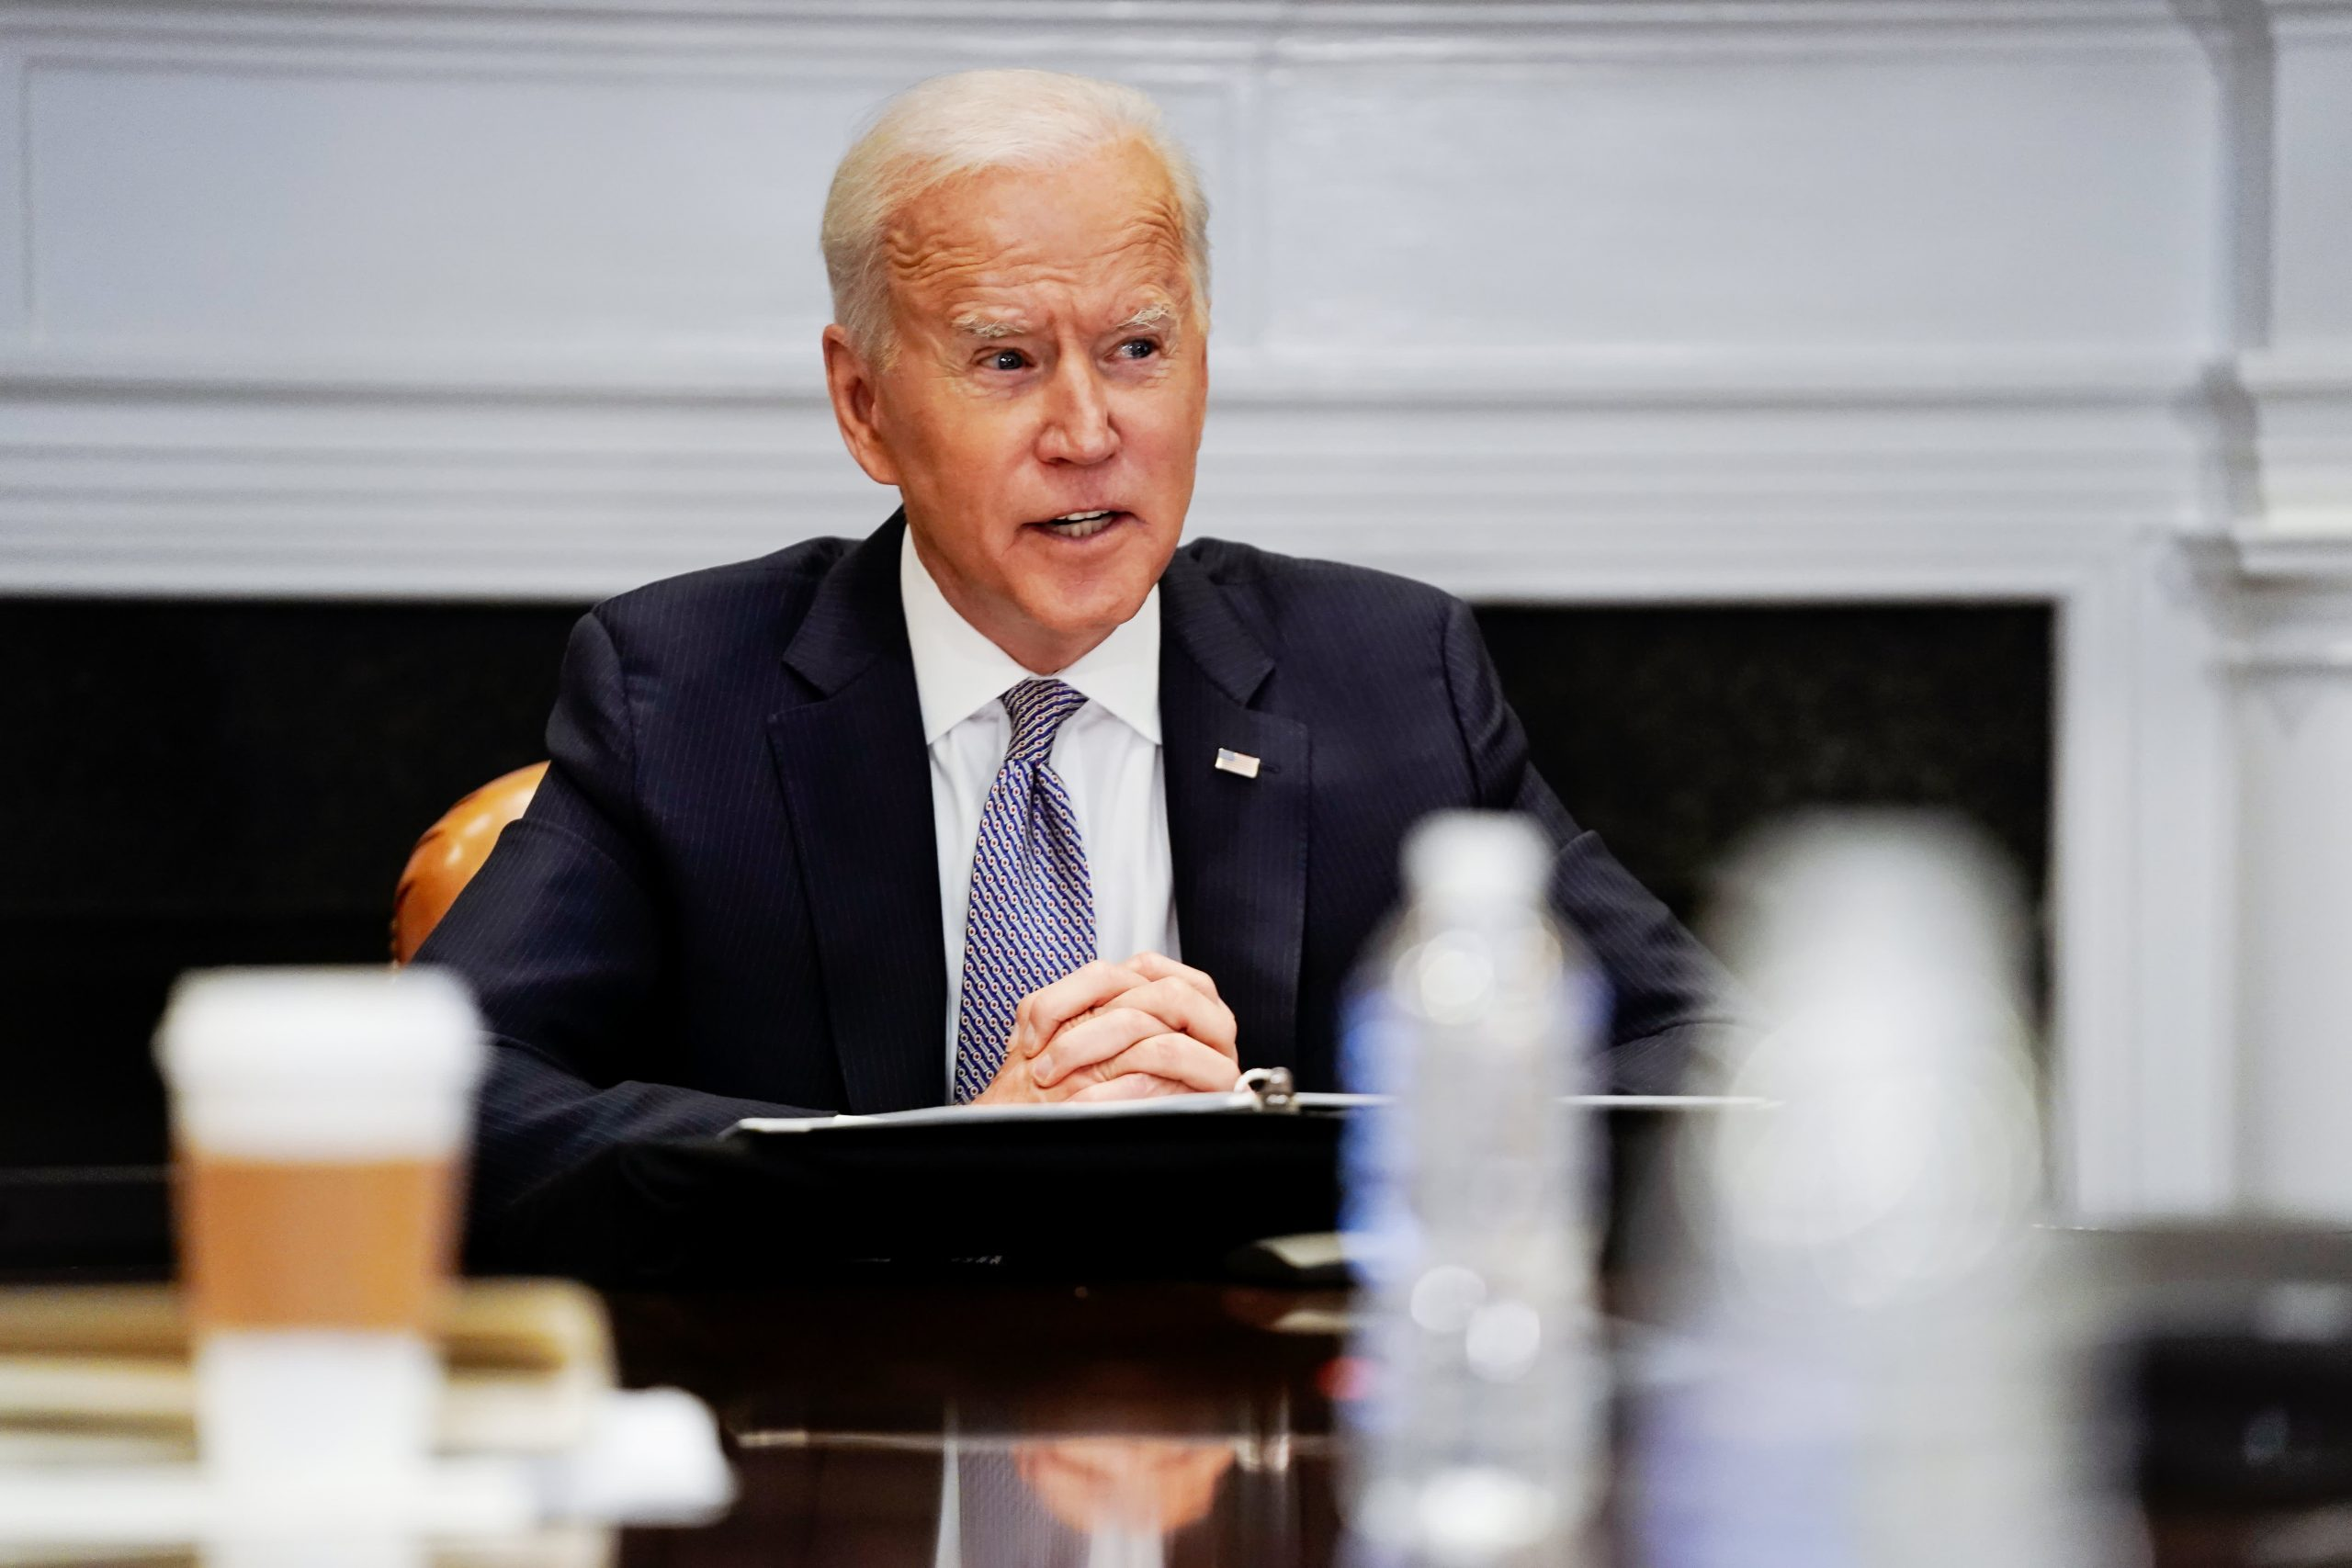 Executives call on Biden to cut emissions to combat climate change